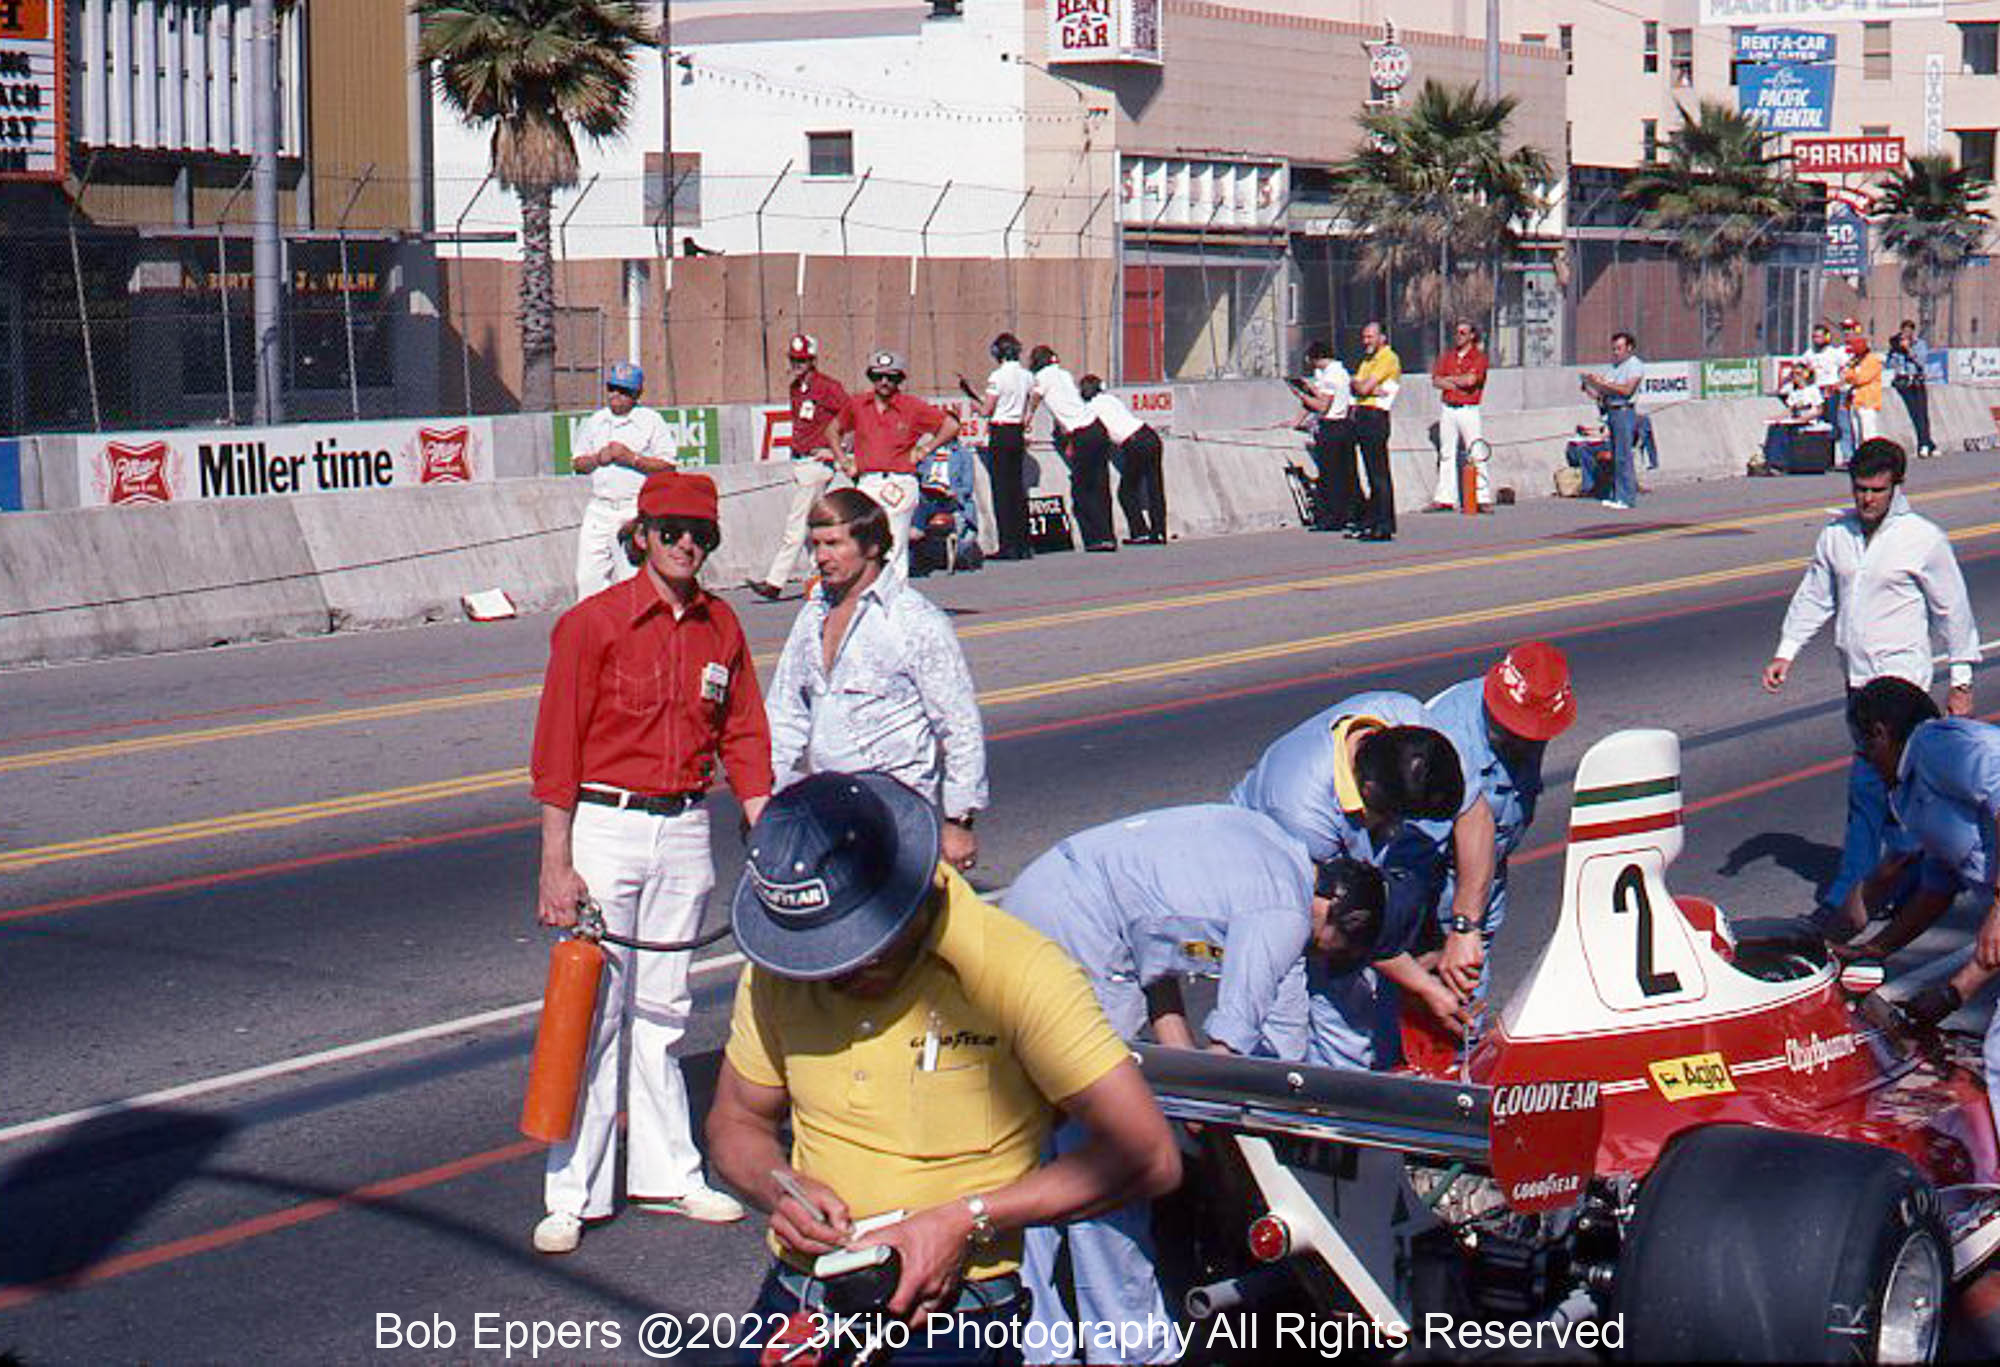 Photo of Parnelli Jones and Al Unser in the pit lane..  3 Kilo is in the red shirt holding the fire extinguisher.  1976